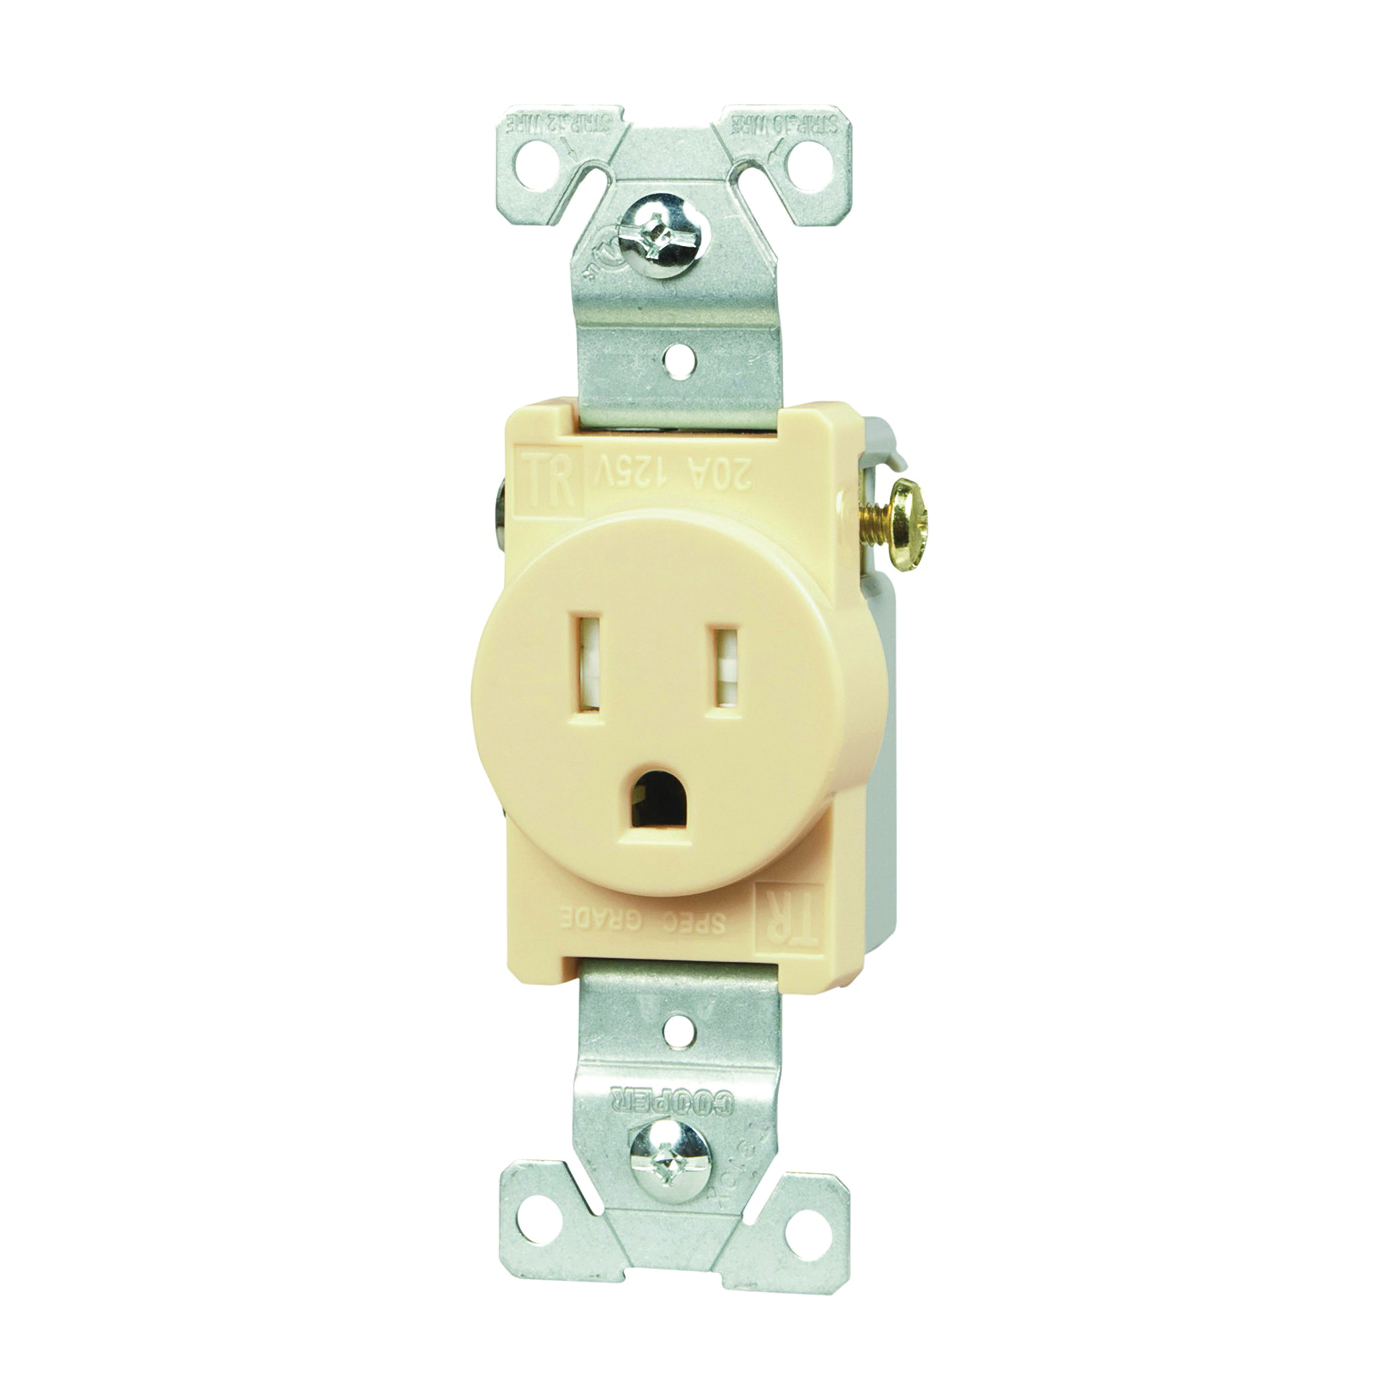 Picture of Eaton Wiring Devices TR817V-BOX Single Receptacle, 2-Pole, 125 V, 15 A, Side Wiring, NEMA 5-15R, Ivory